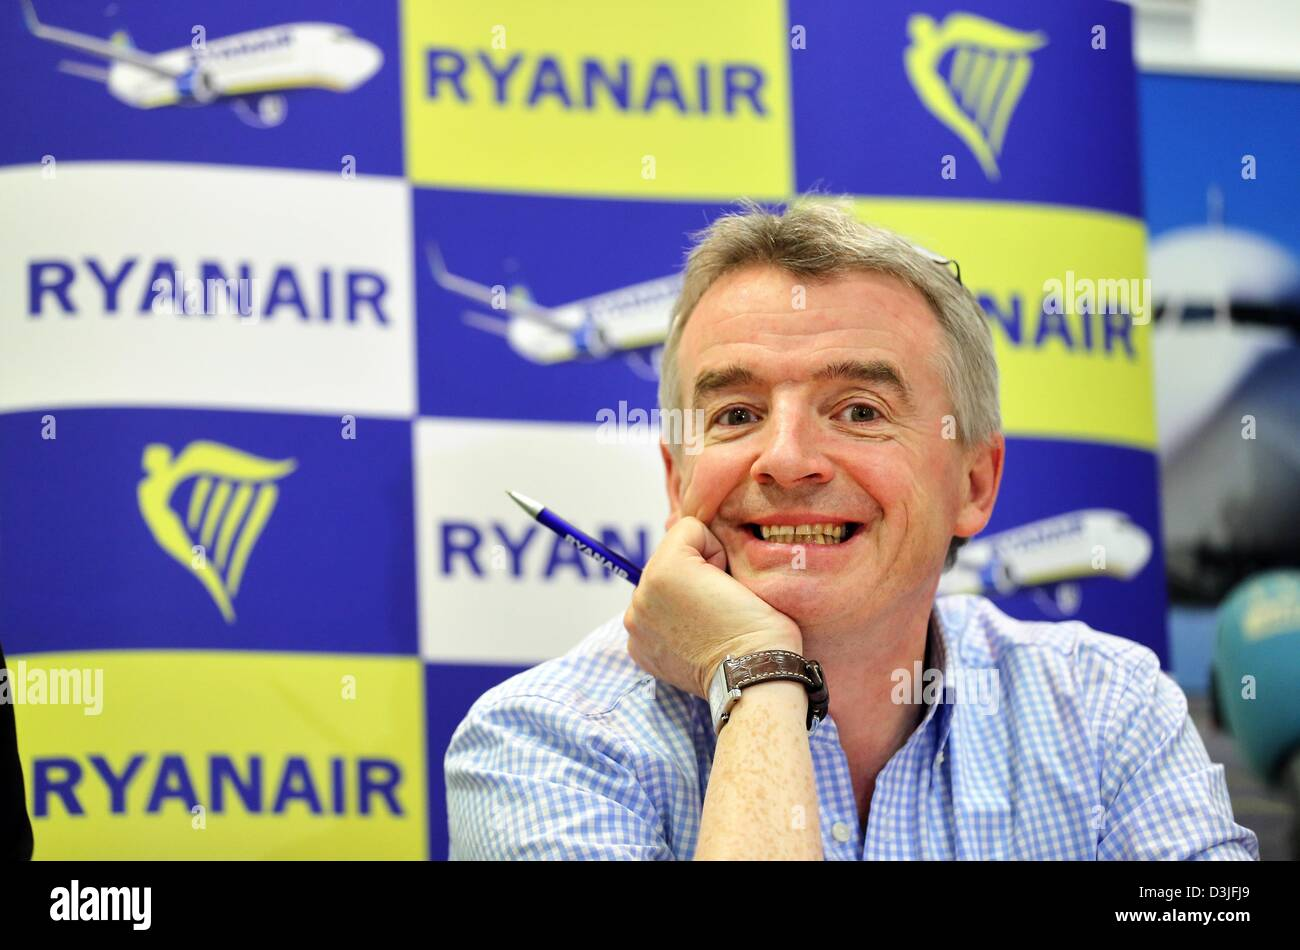 Ryanair CEO Michael O'Leary smiles at a press conference at Leipzig/Halle airport in Schkeuditz, Germany, 20 February Stock Photo